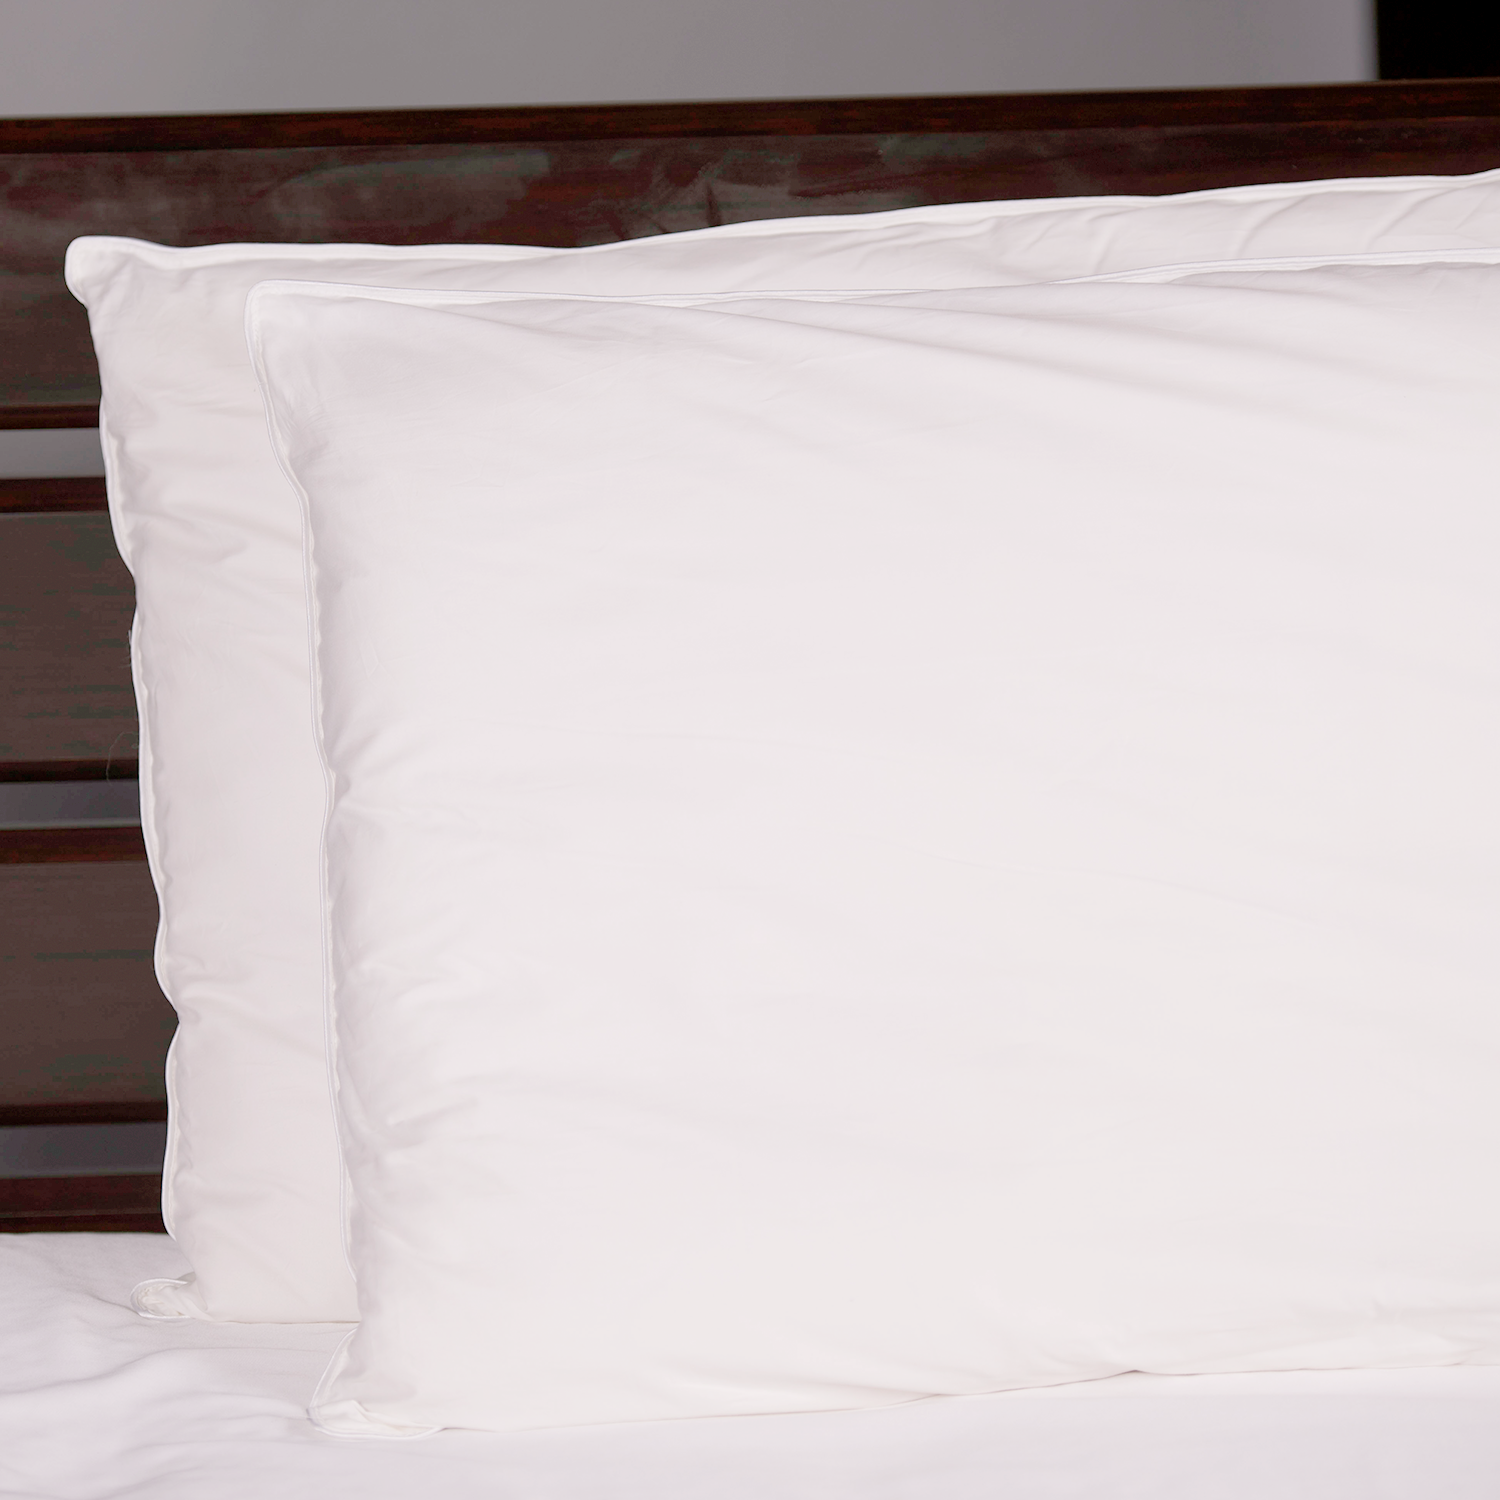 a worth not sleep sherpa hassle miracle bamboo it side view pillow the what totally